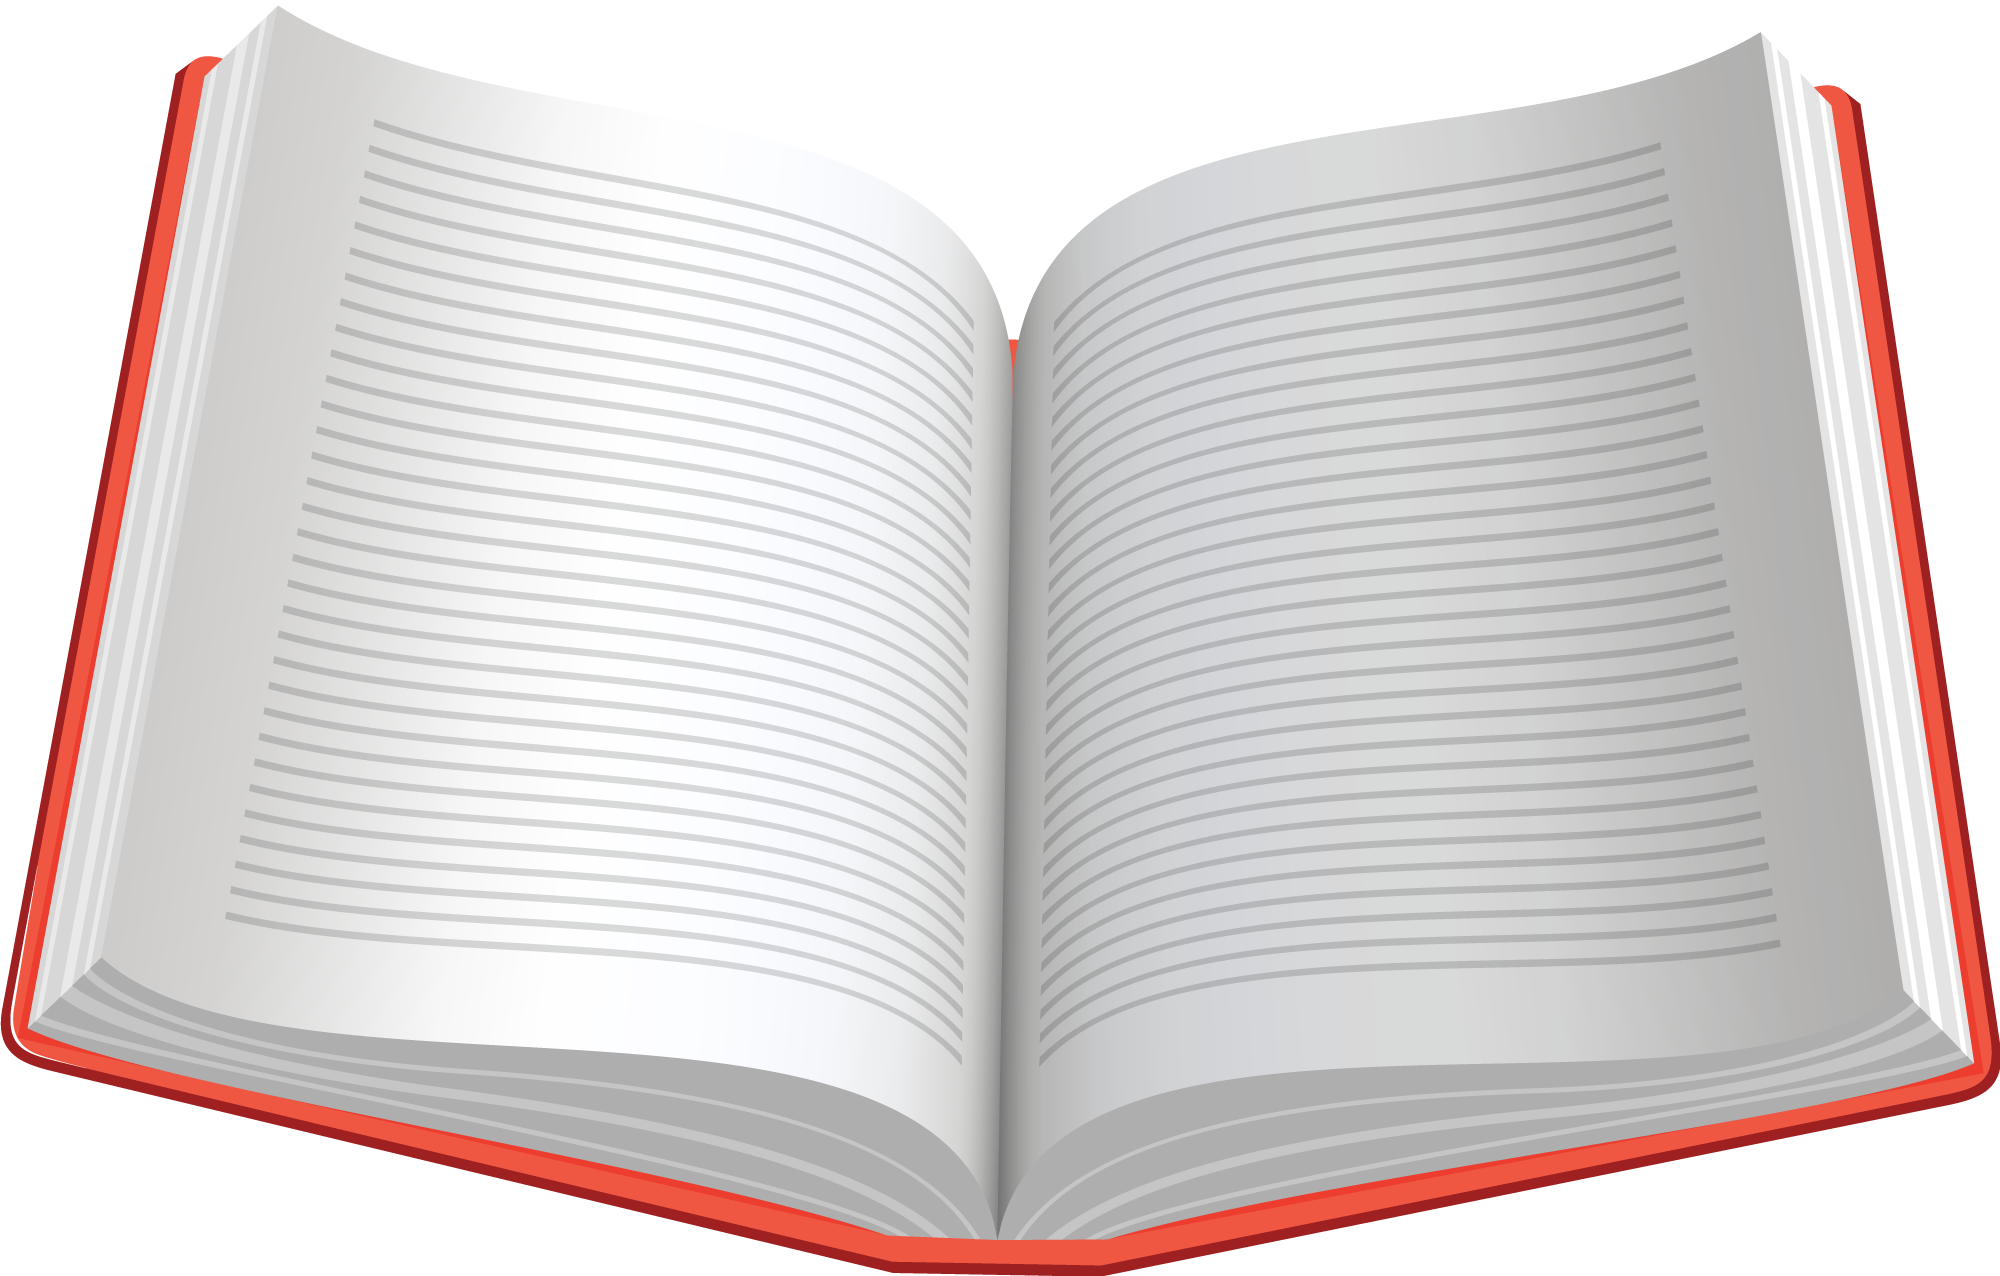 Book Picture Png 25681 Free Icons And Png Backgrounds